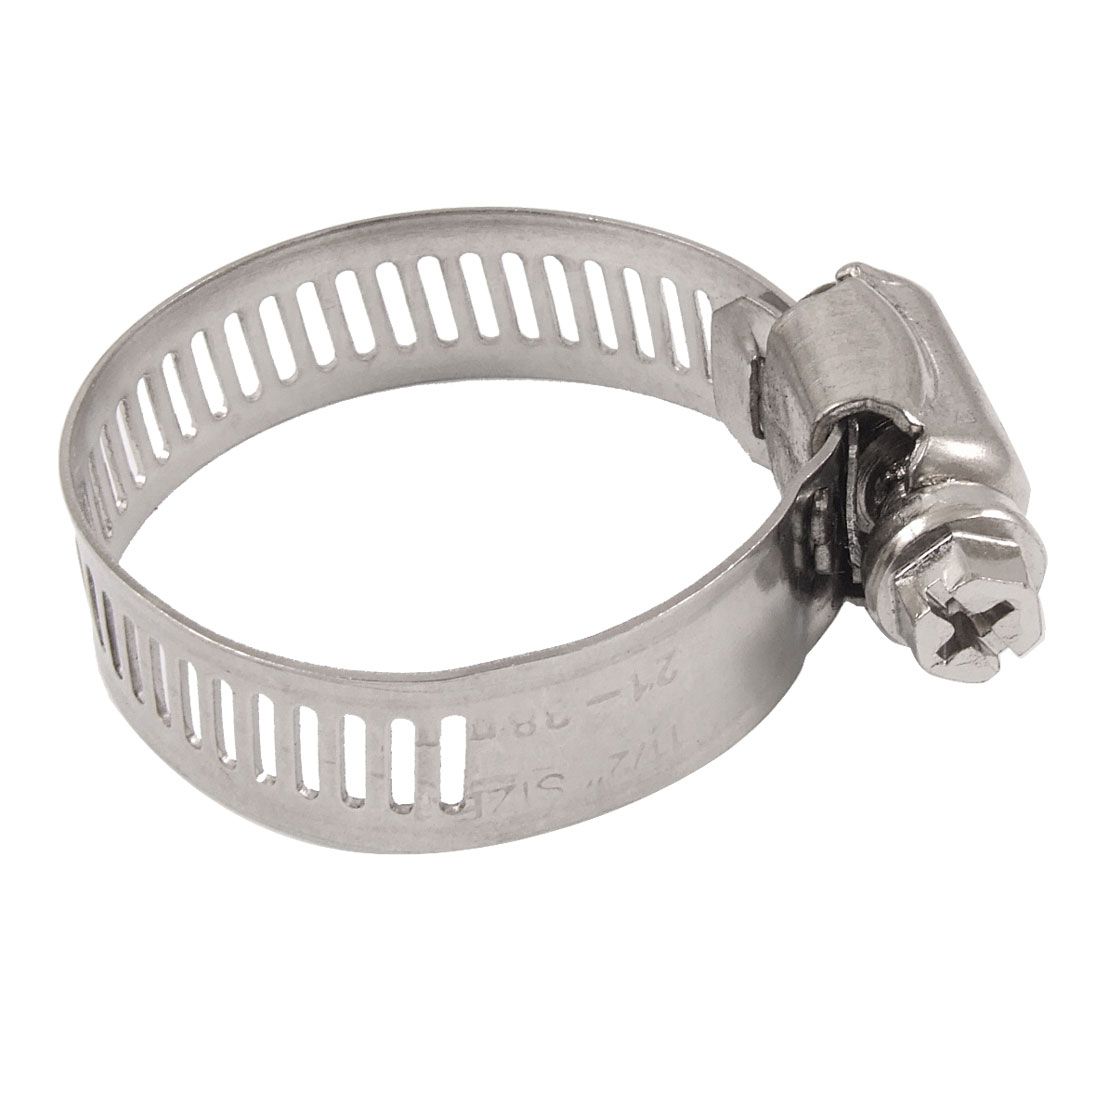 Adjustable 21-38mm Range Worm Drive Hose Clamp Silver Tone